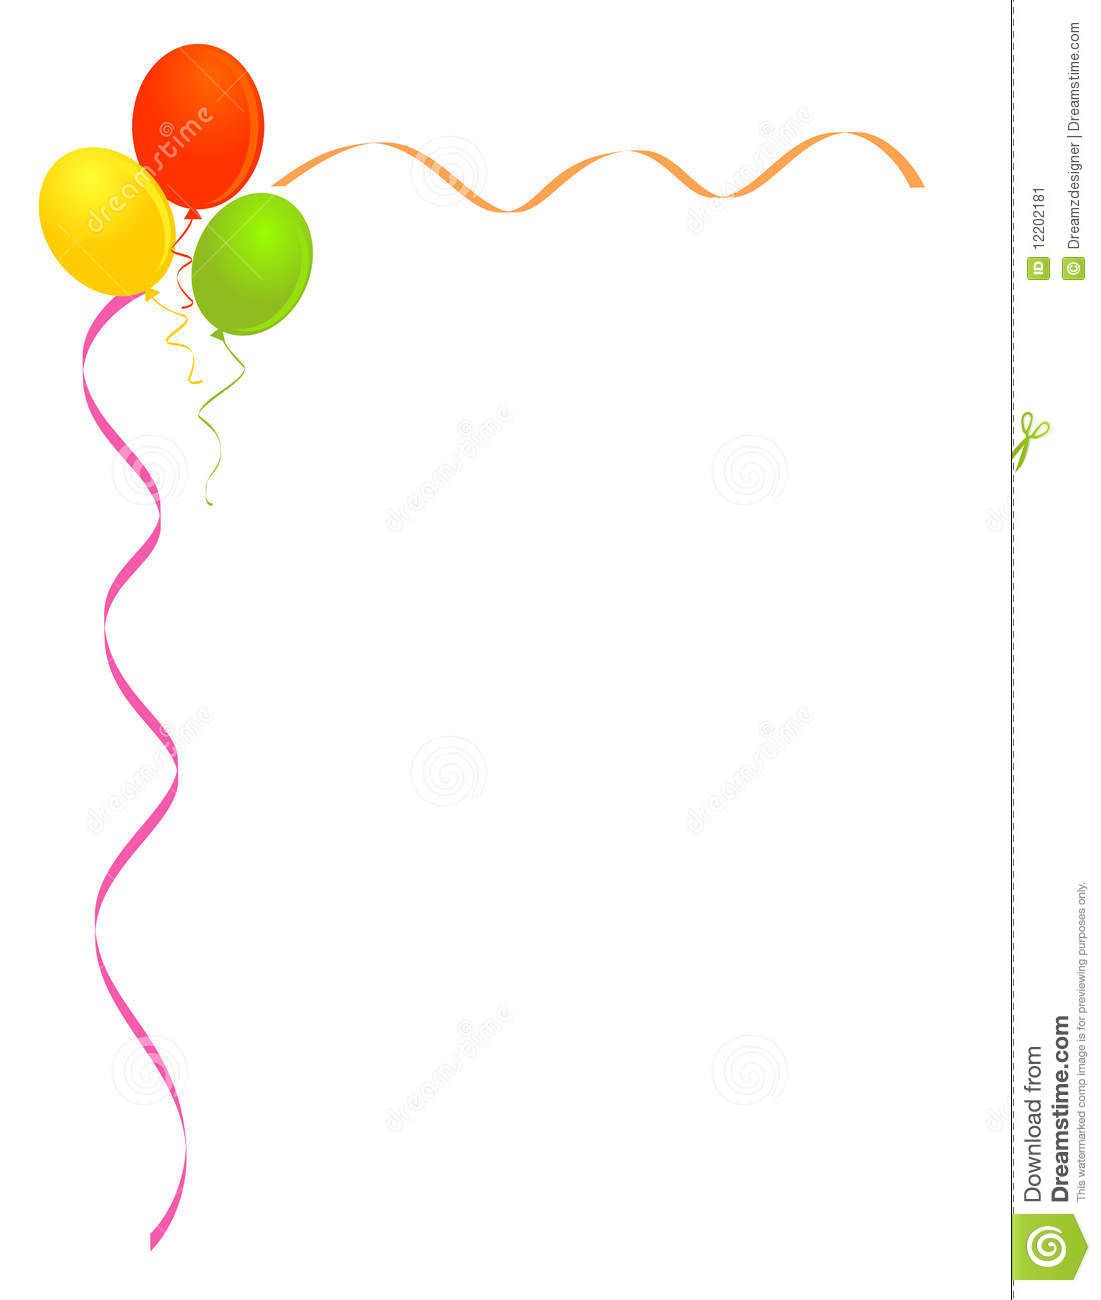 hight resolution of party balloons frame border